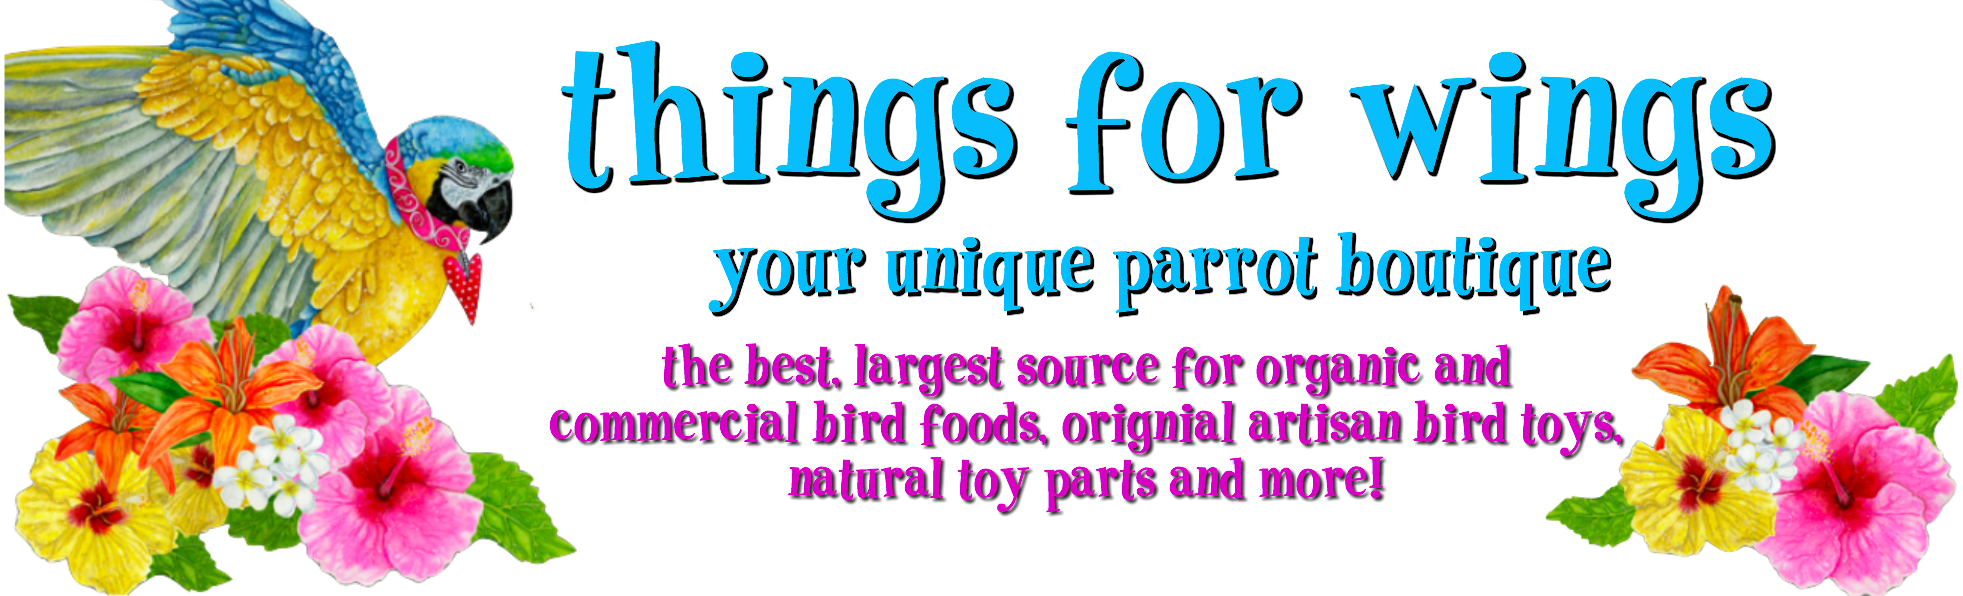 Things for Wings